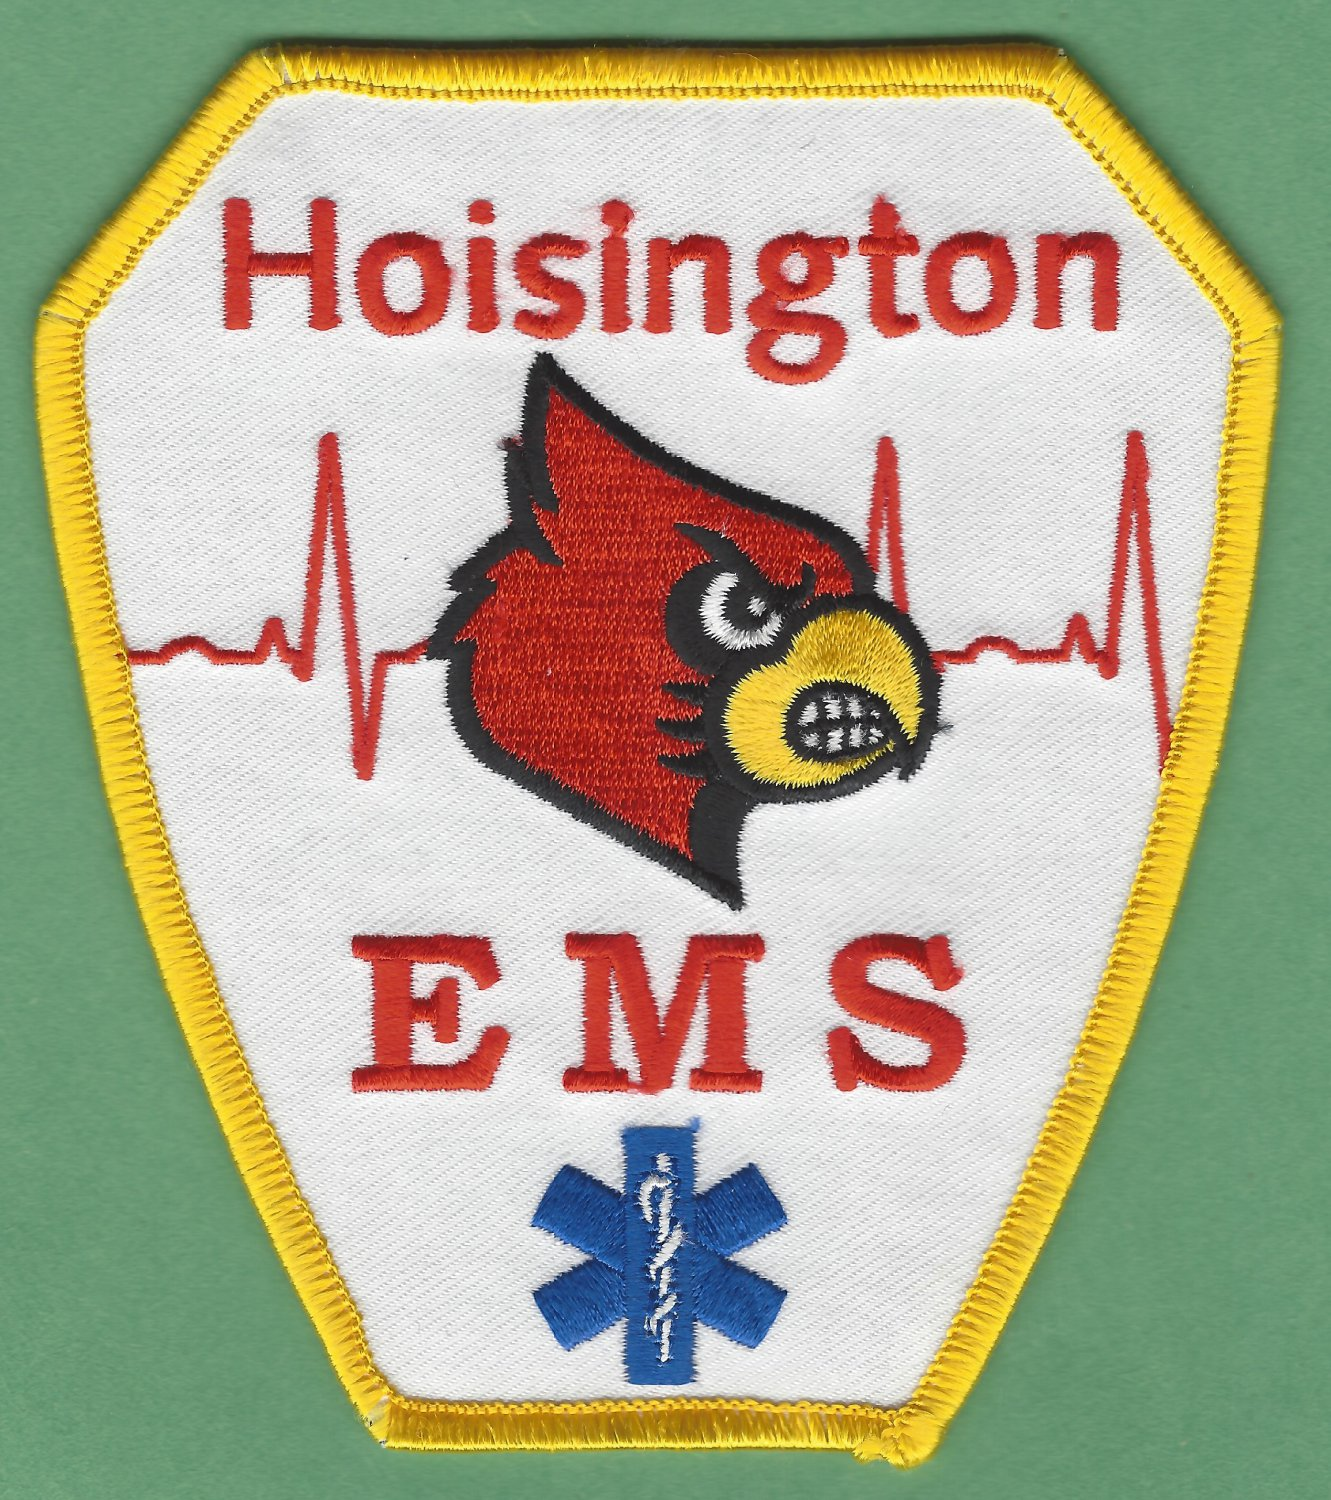 HOISINGTON KANSAS EMS EMERGENCY MEDICAL SERVICE AMBULANCE PATCH